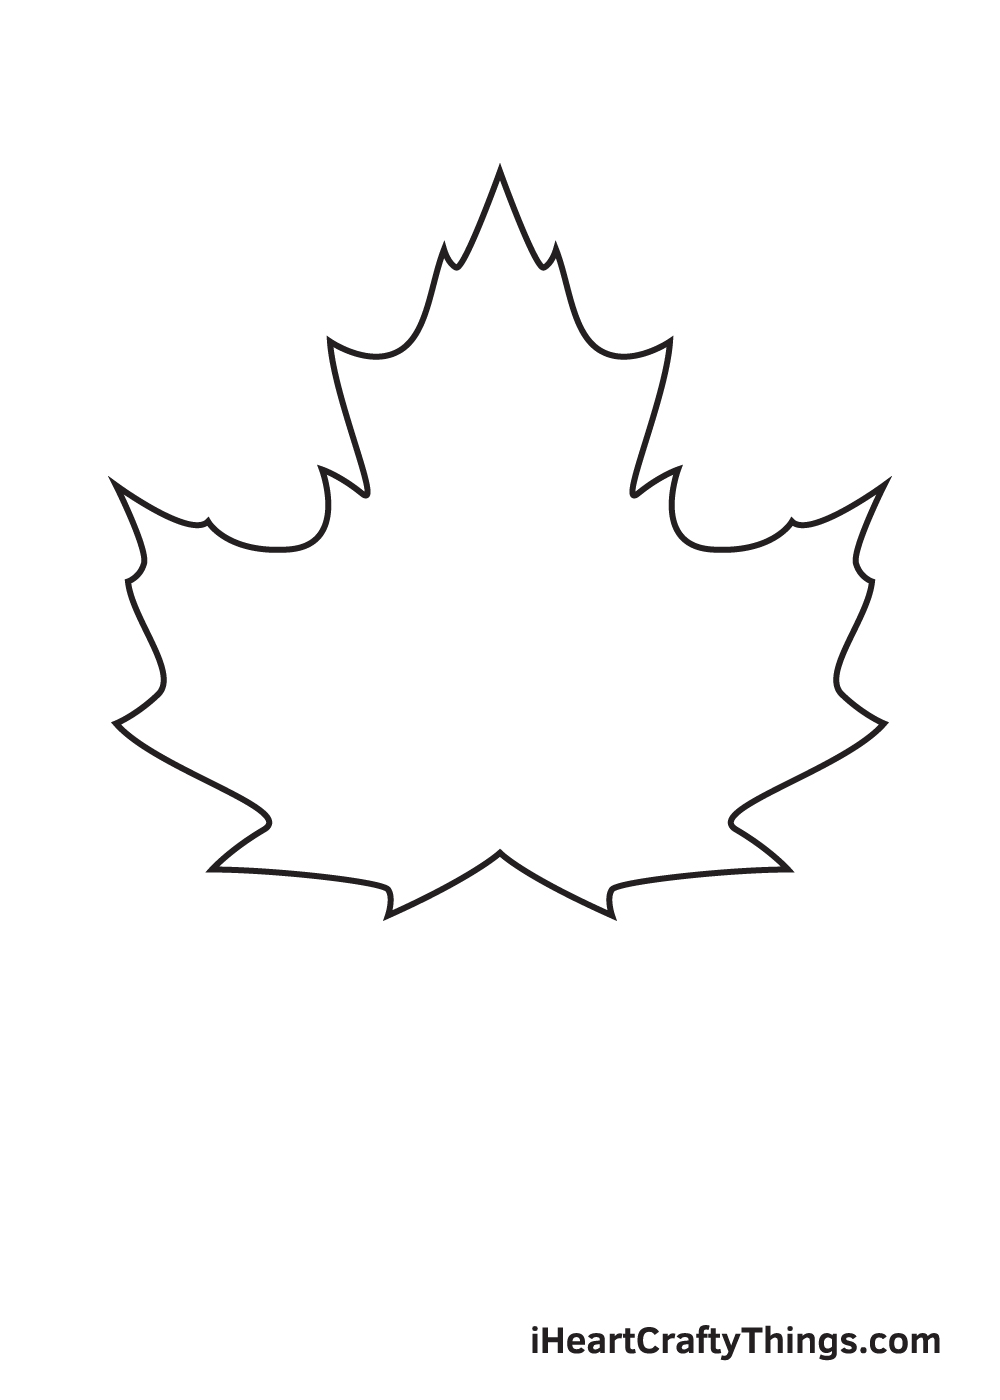 fall leaves drawing step 6